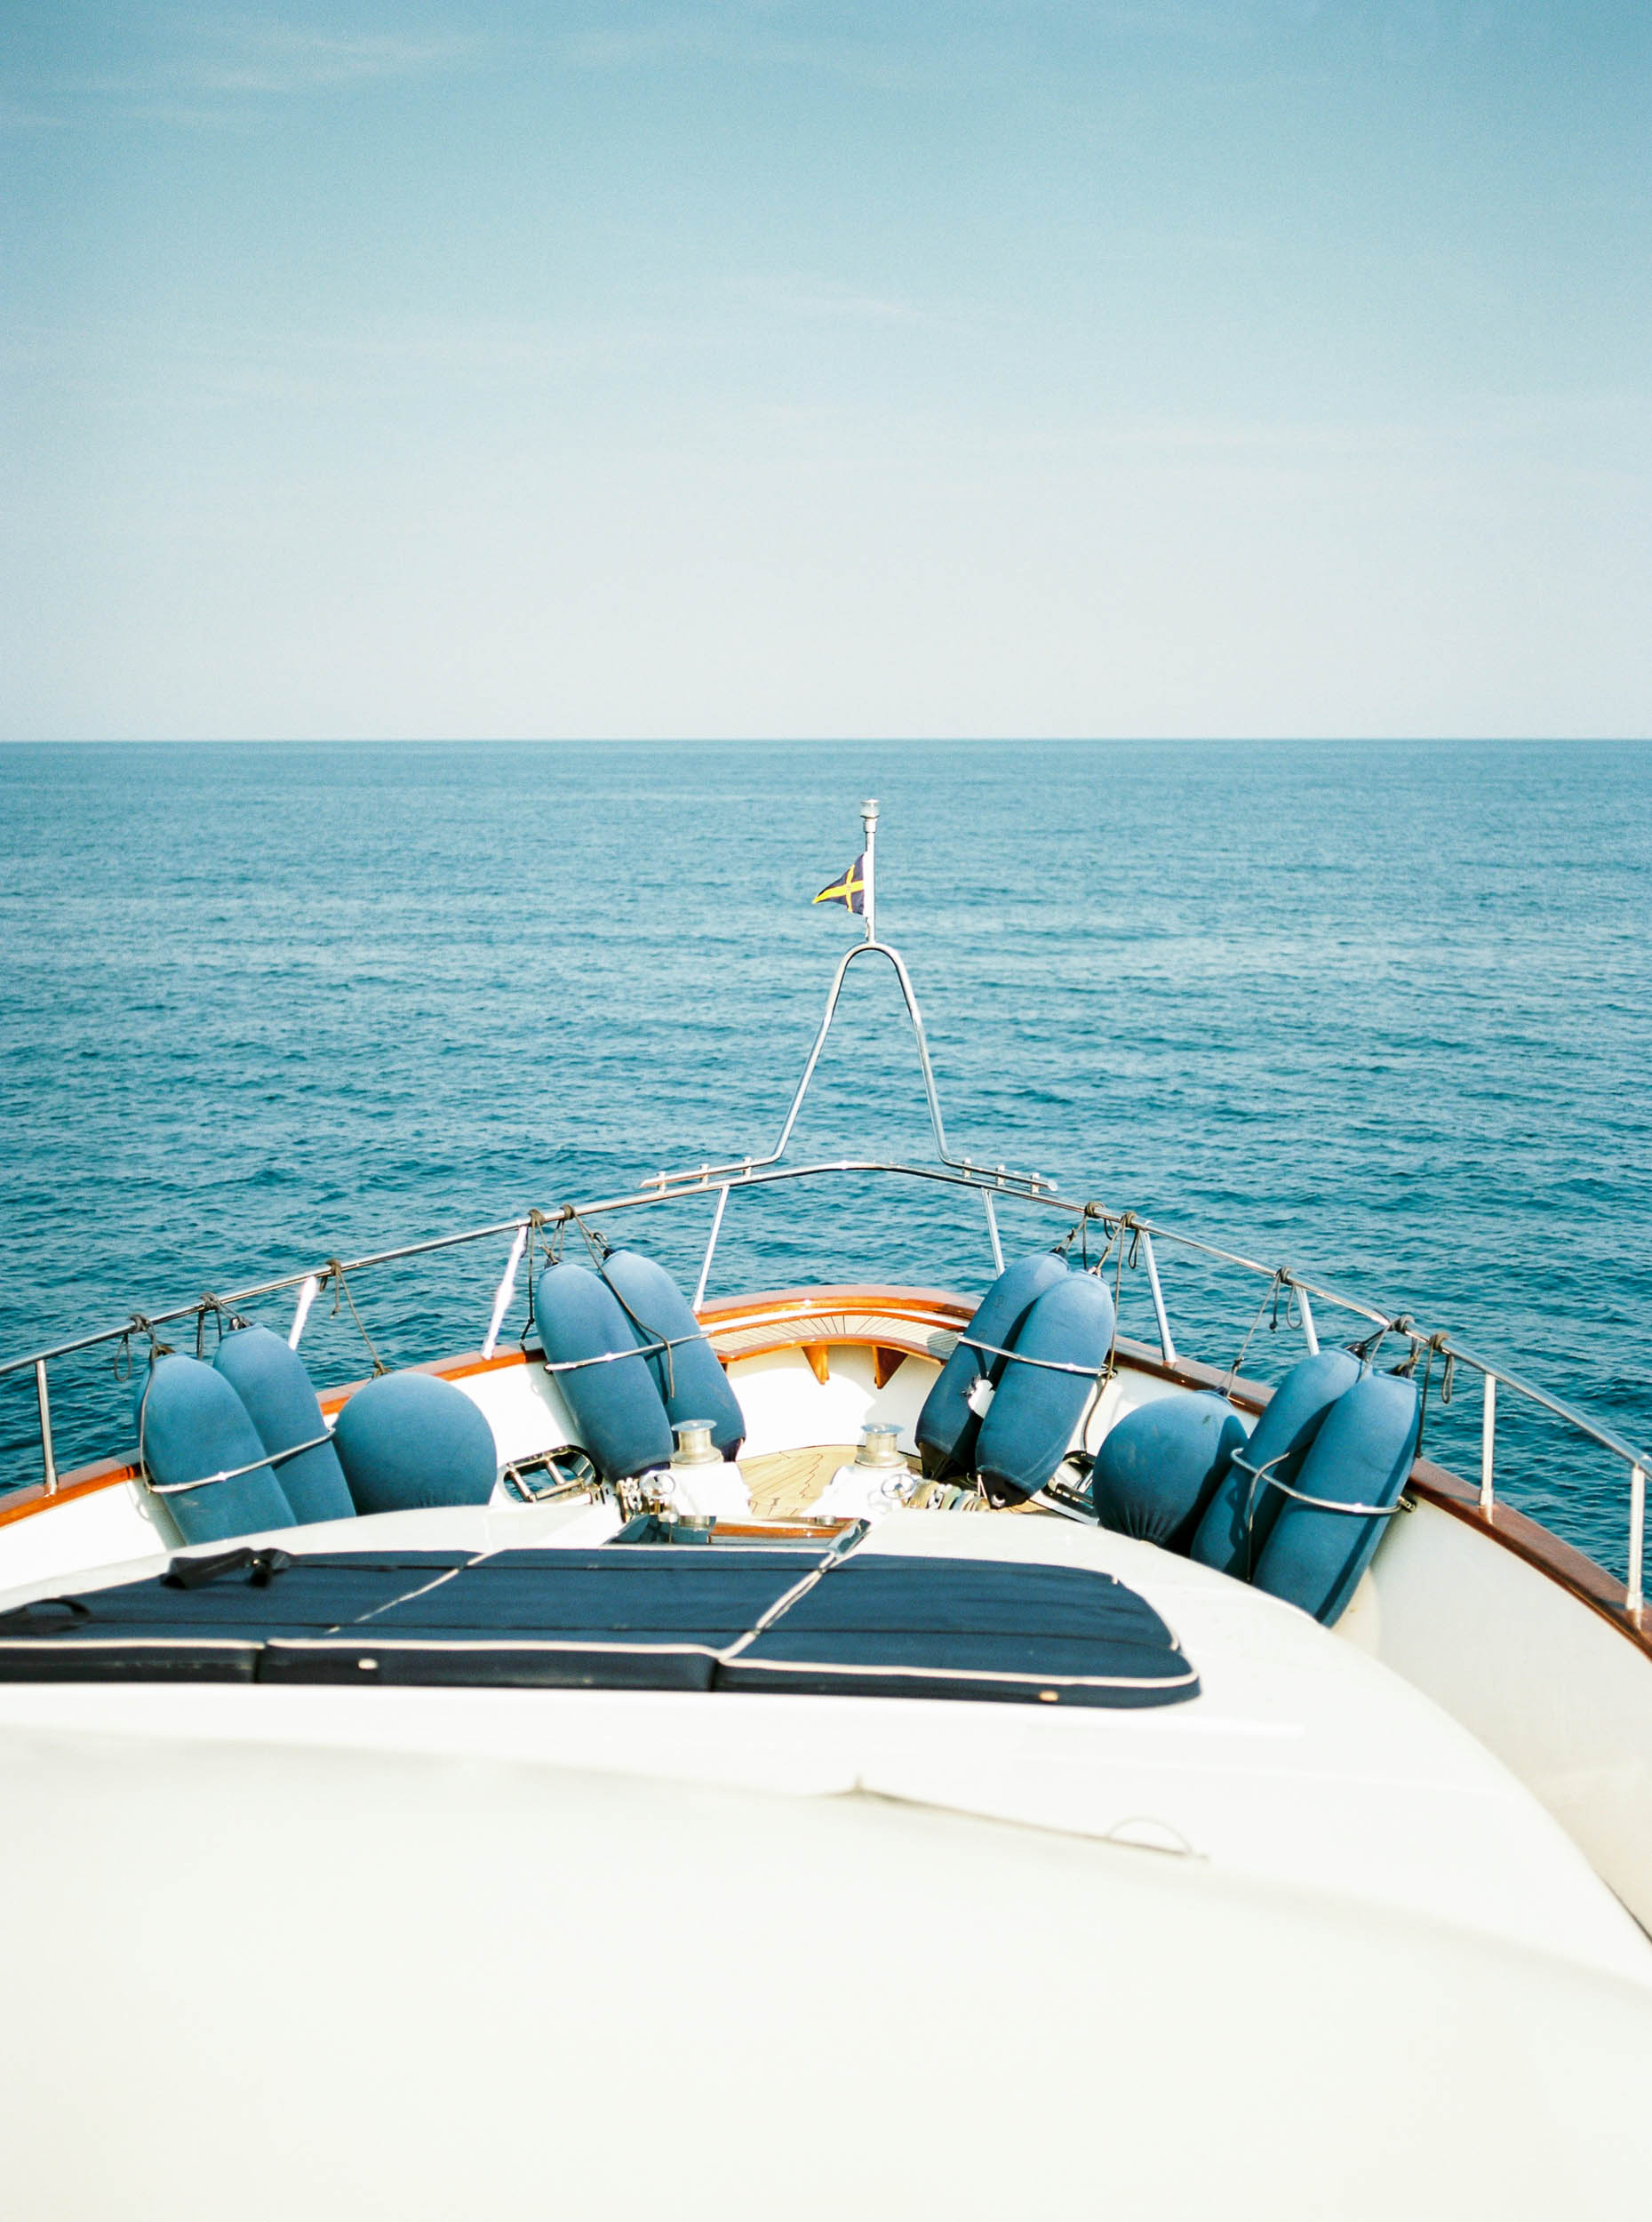 Amy O'Boyle Photography- Destination & UK Fine Art Film Wedding Photographer- South Of France St Tropez Yacht Hotel Du Cap Eden Roc-12.jpg